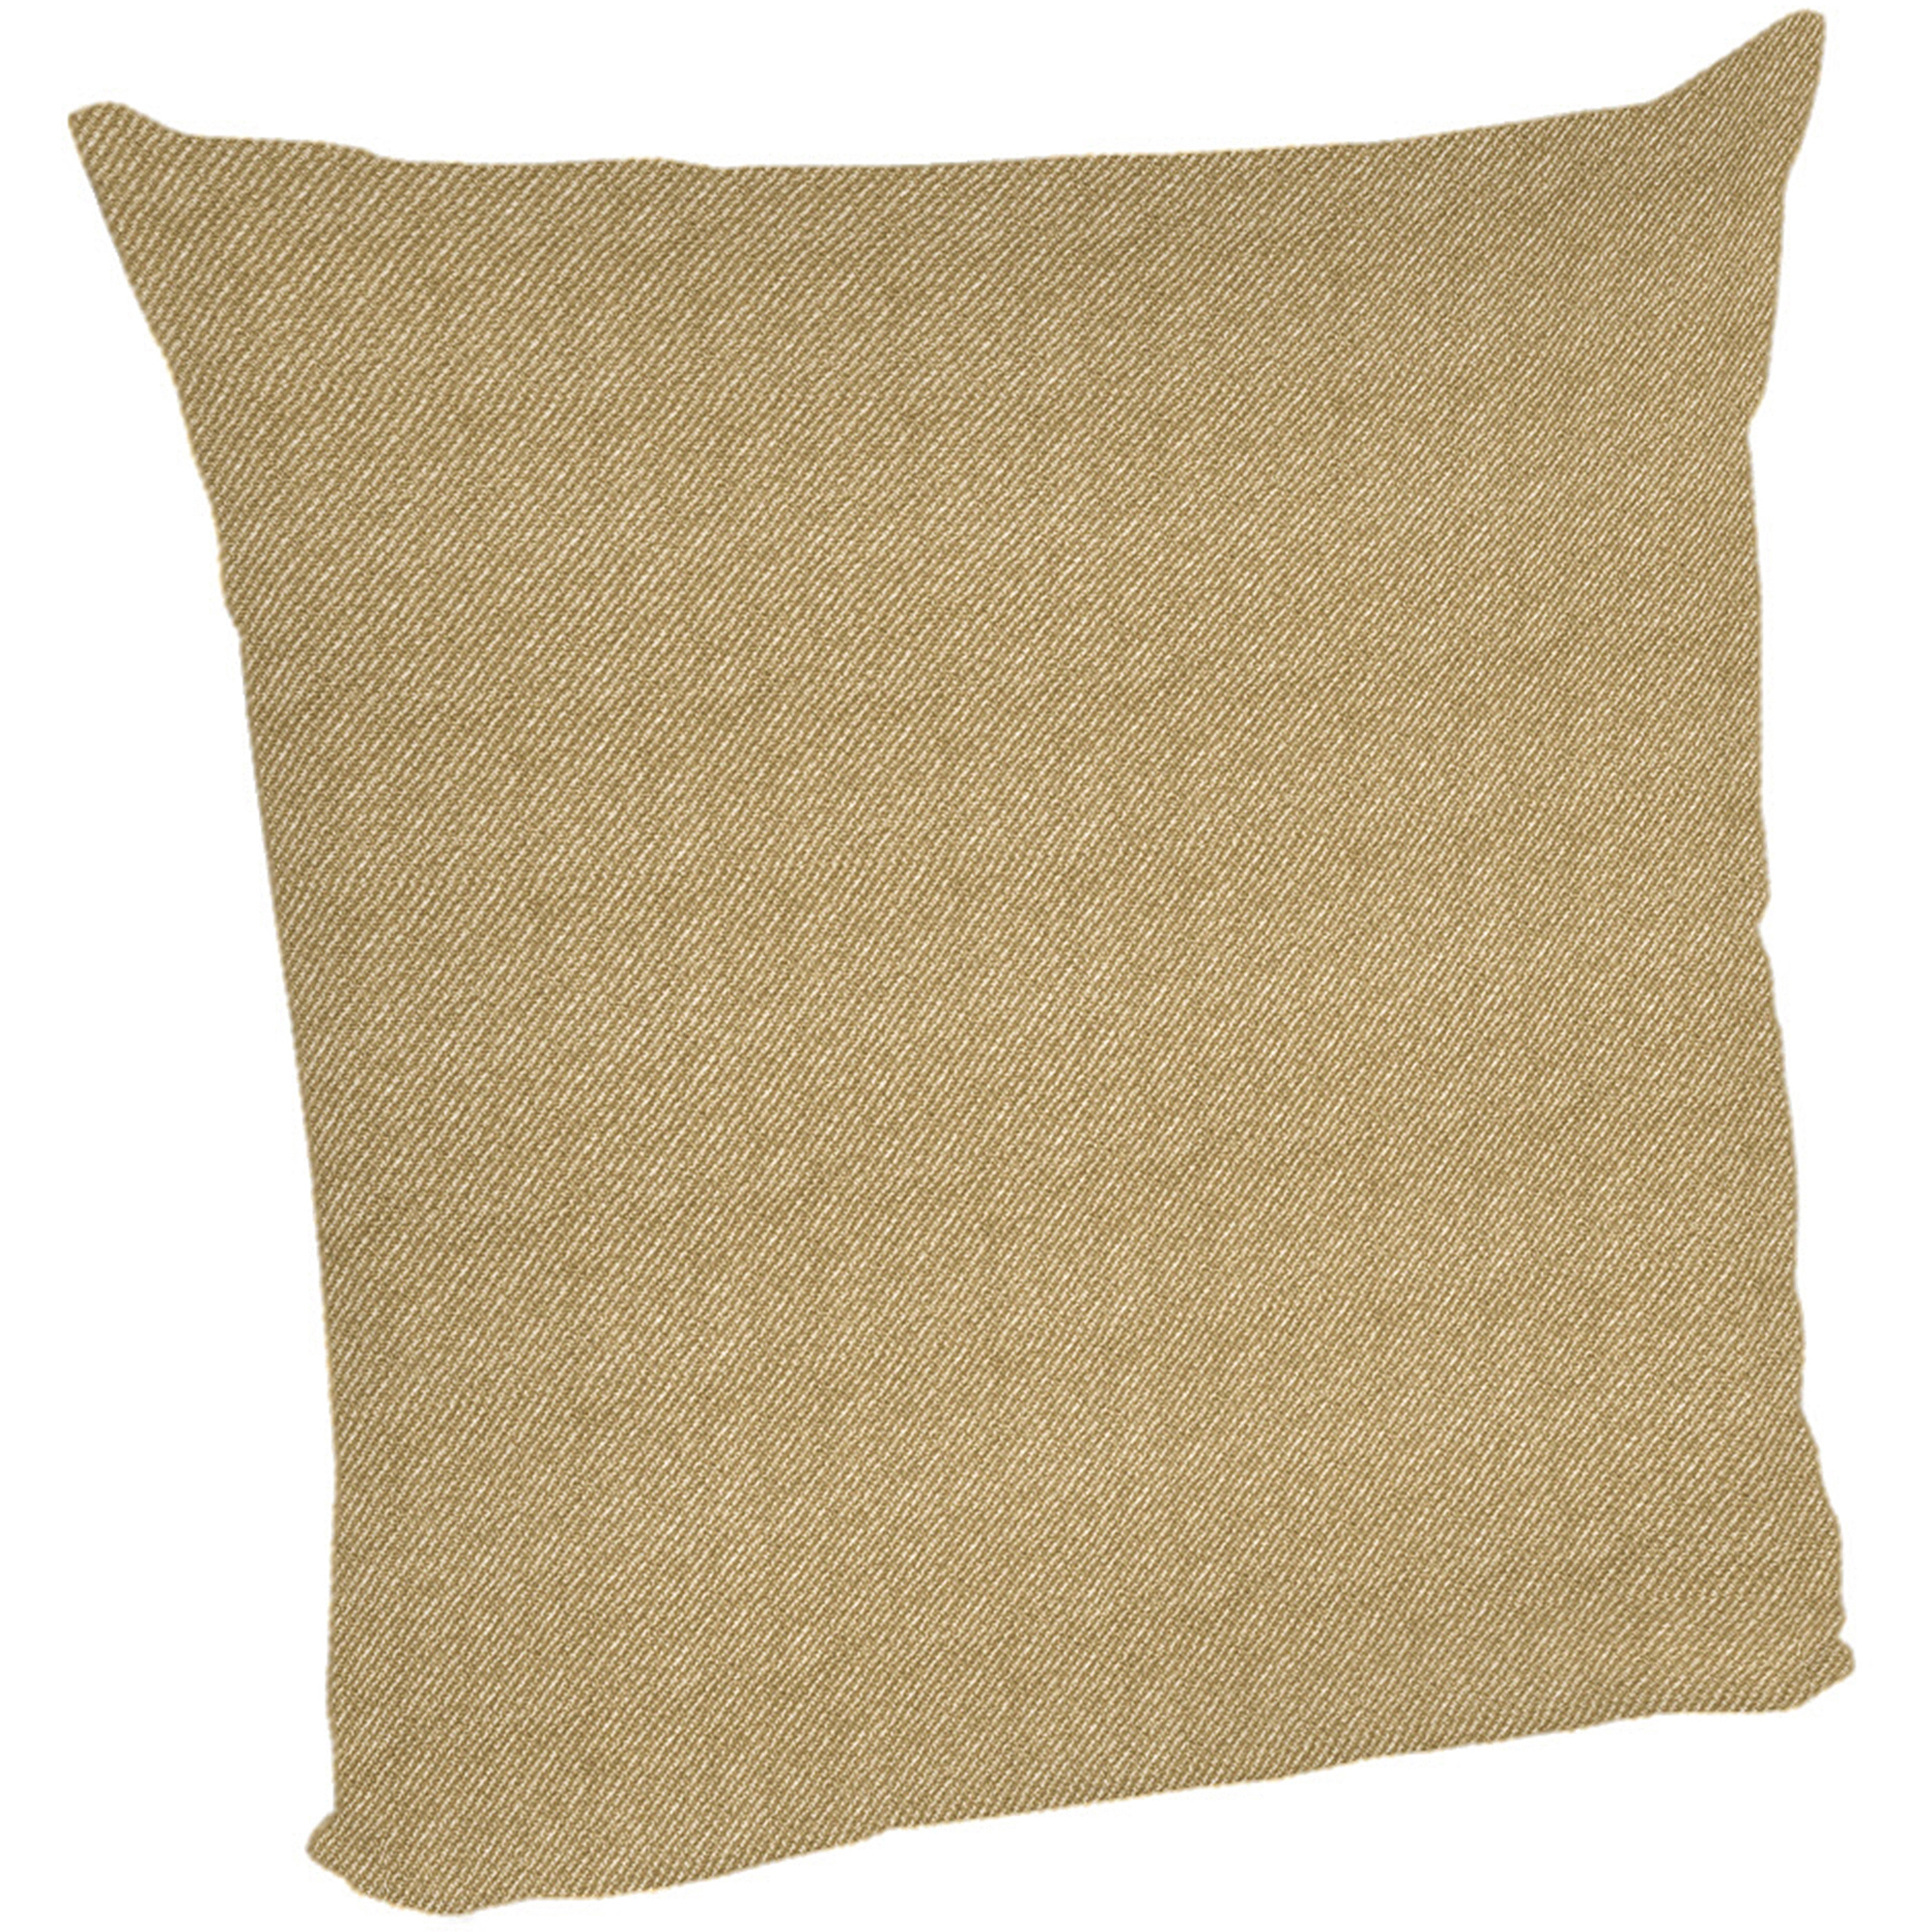 Arden Deep Seat Slipcover for Pillow Back, Tan Texture (Cushion Not Included)